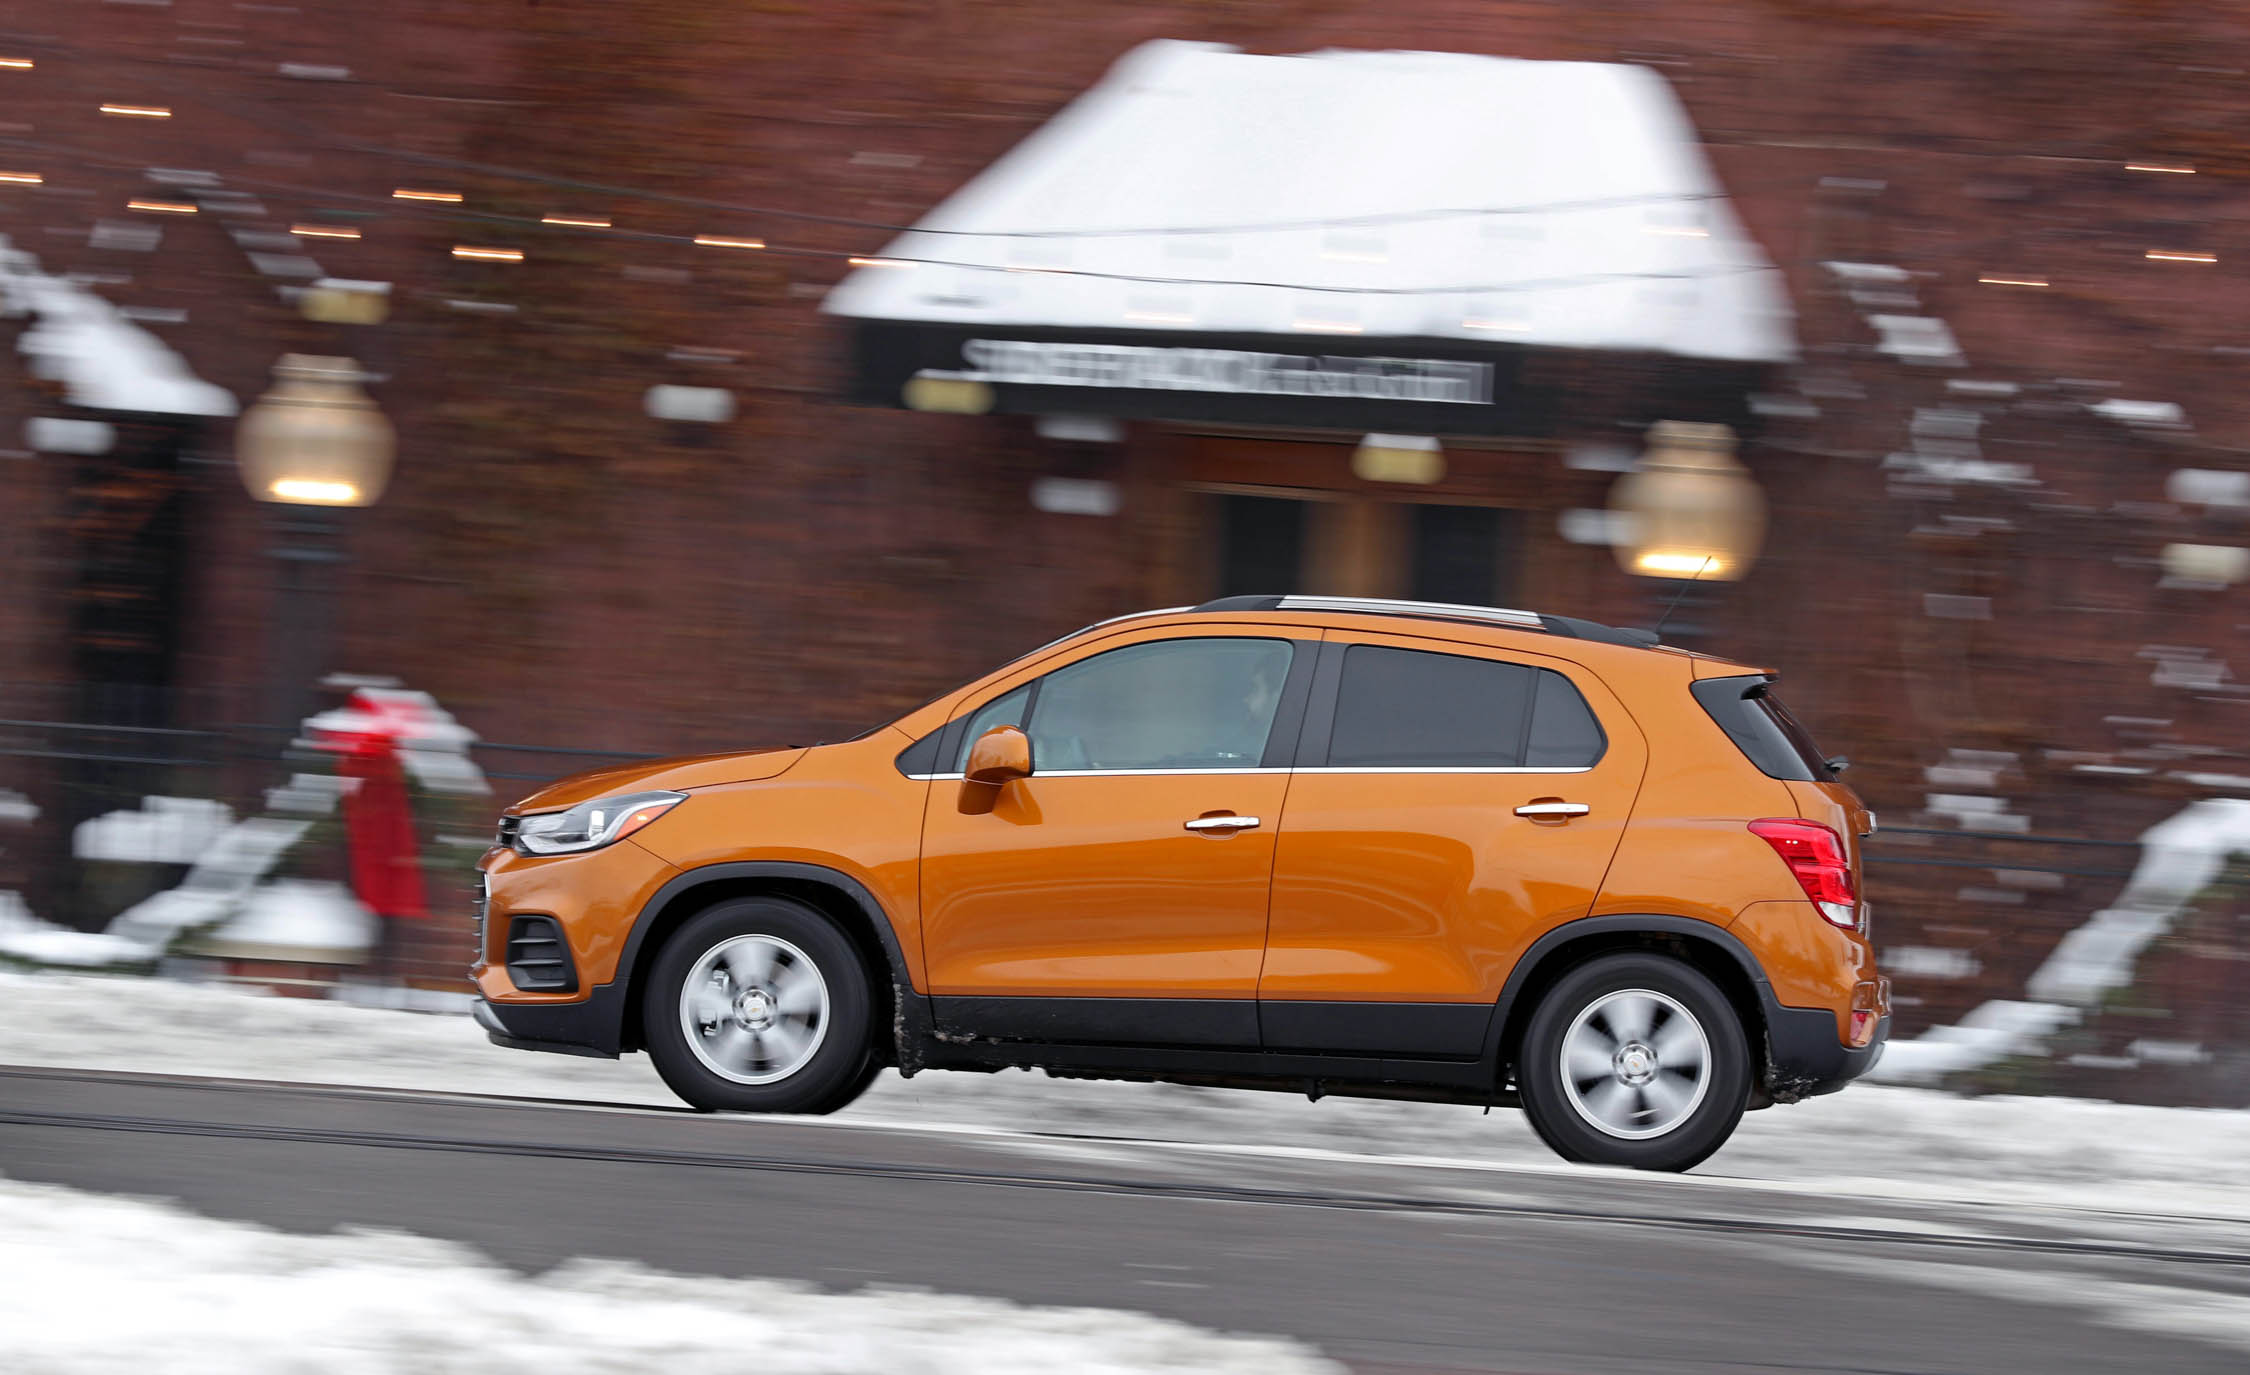 2017 Chevrolet Trax Test Drive Side Preview (Photo 43 of 47)